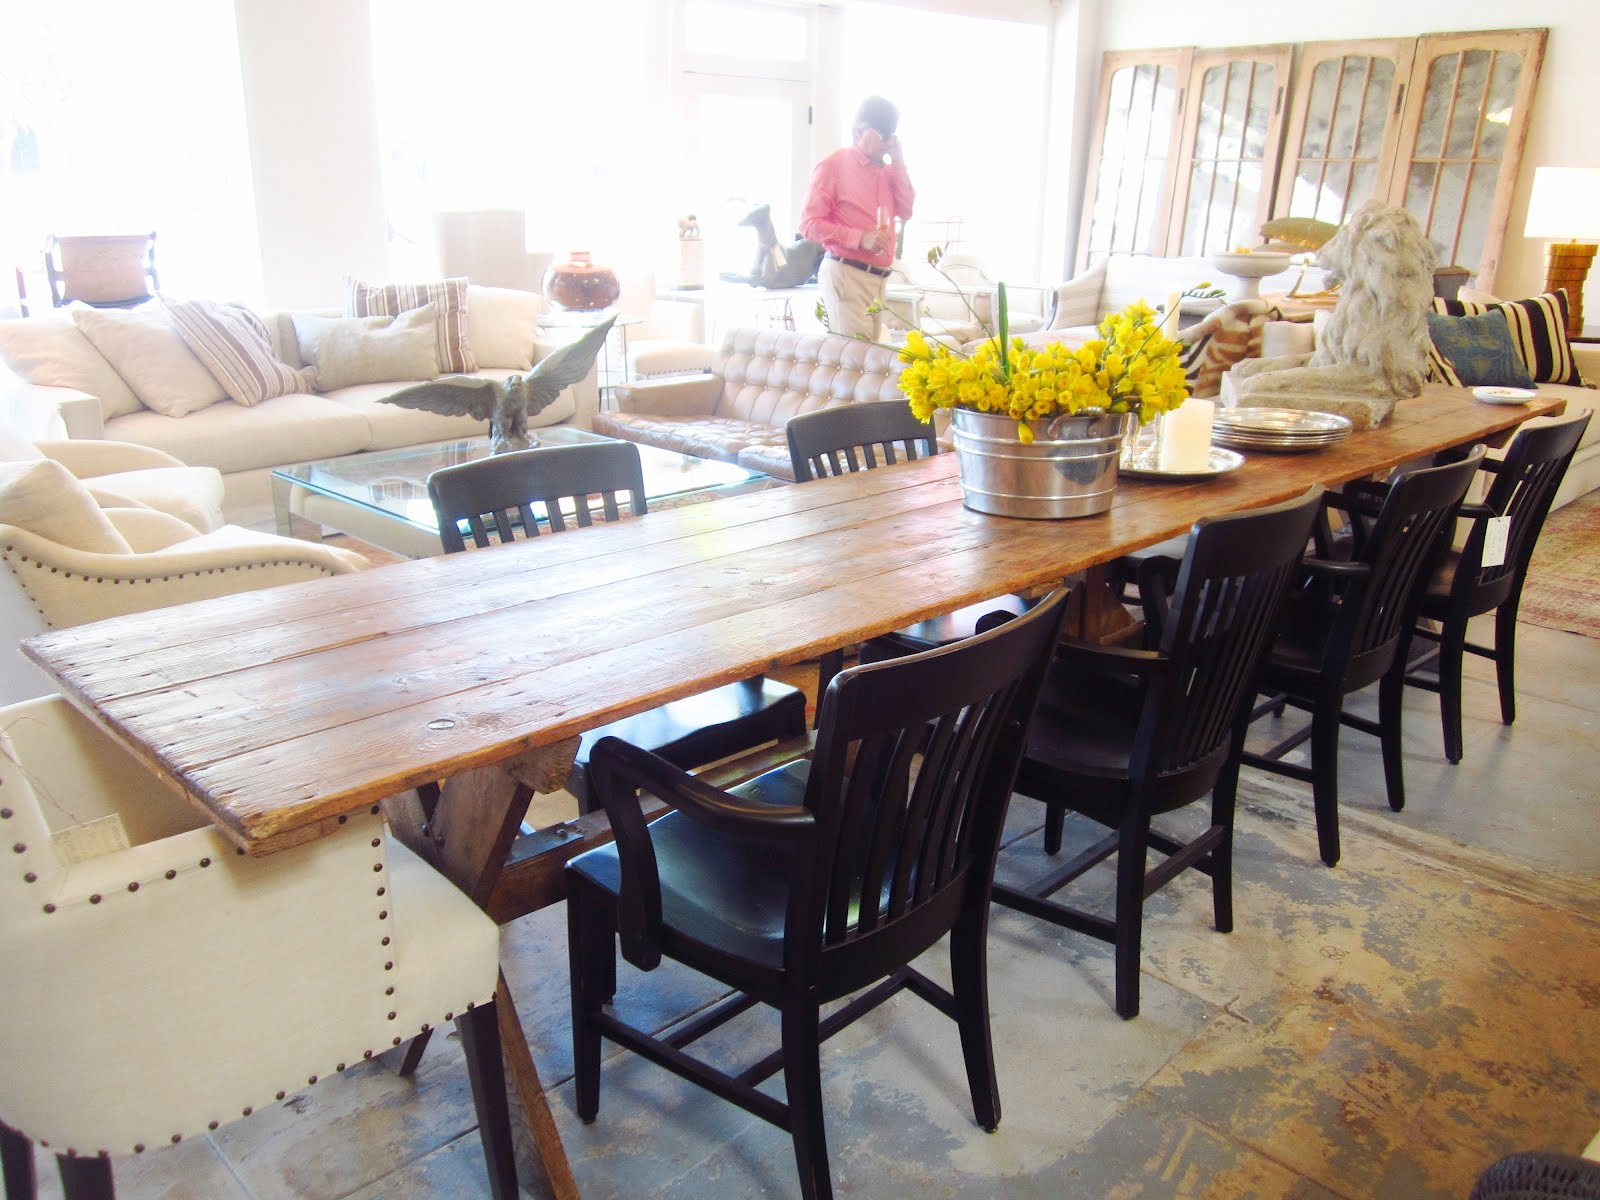 Mitchell & Co. Custom Furniture: F.A.Q.'s